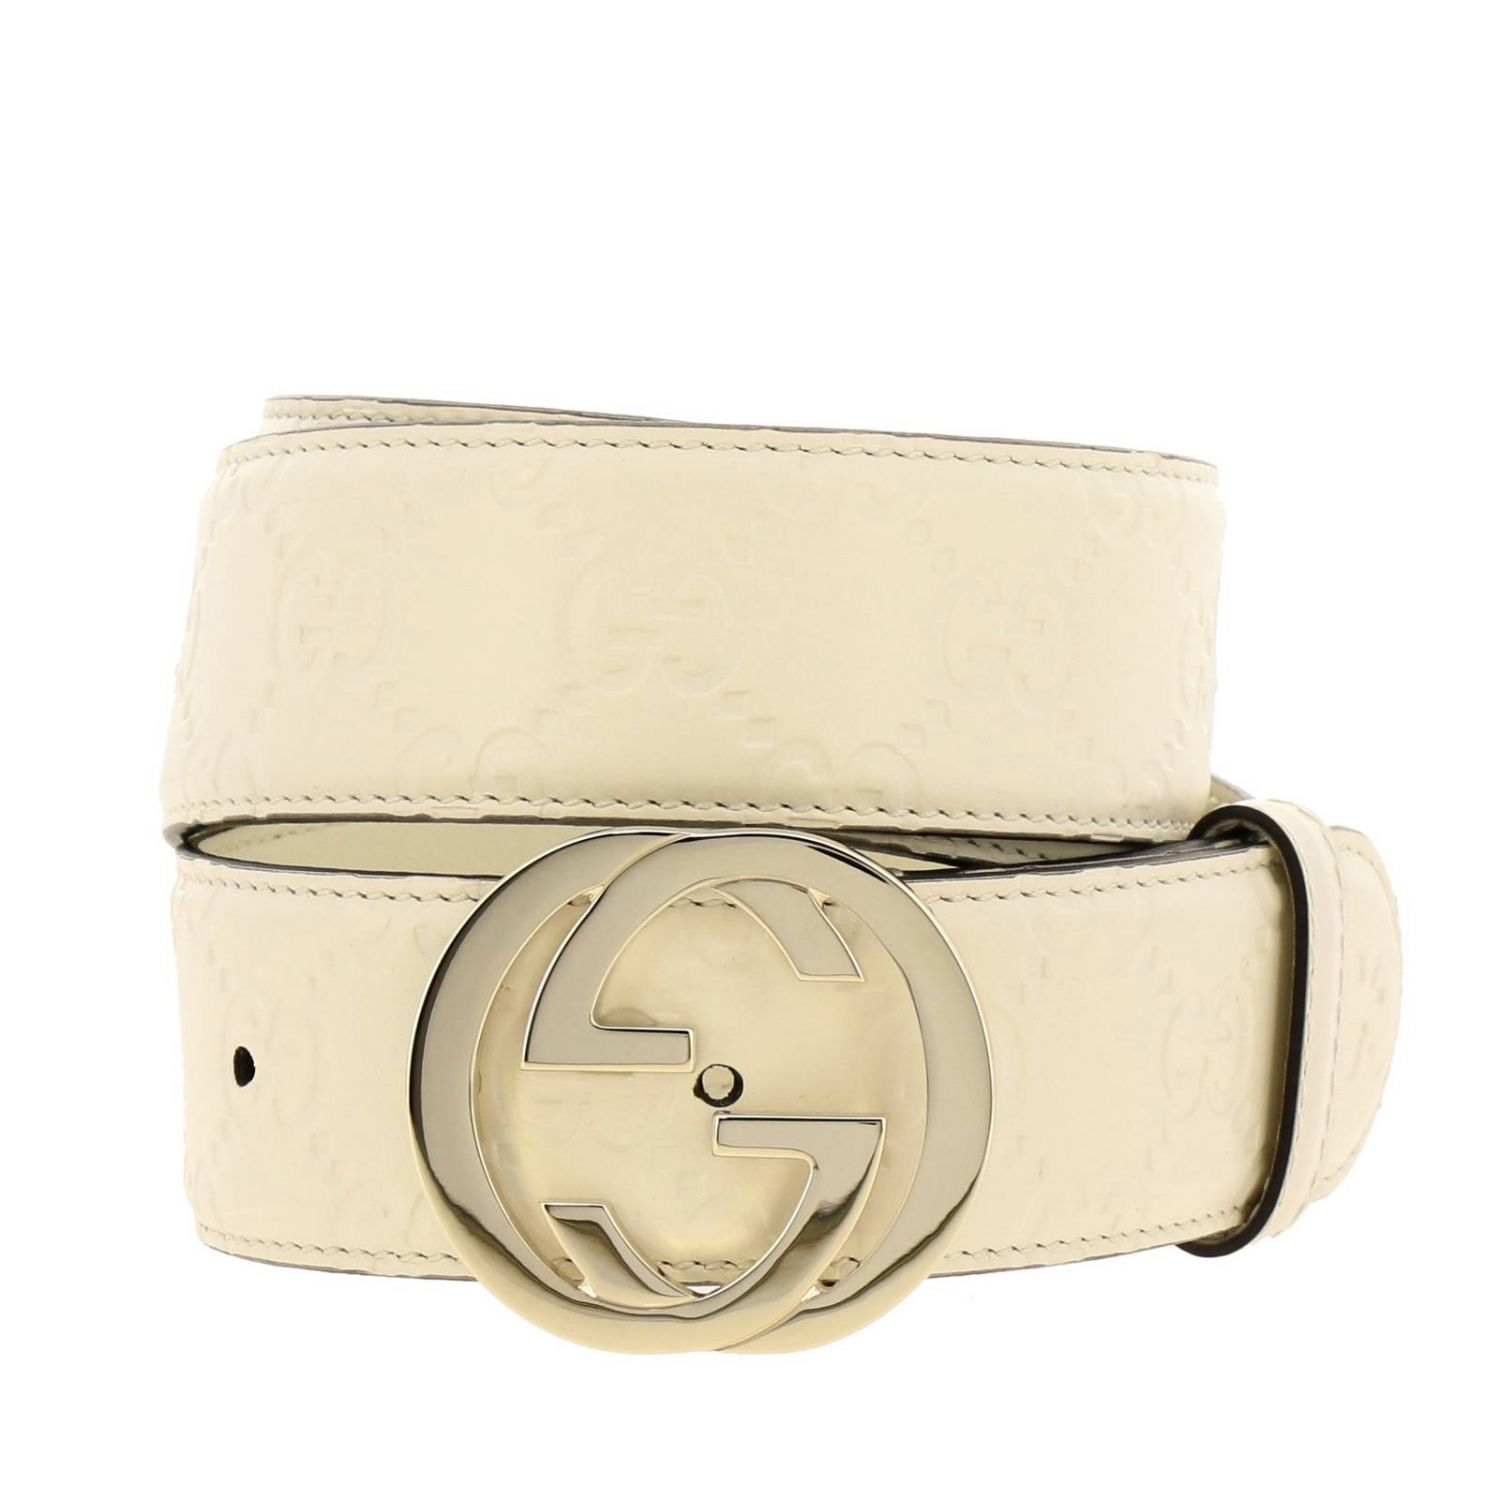 Cintura in pelle GG Gucci embossed con fibbia interlocking bianco 1